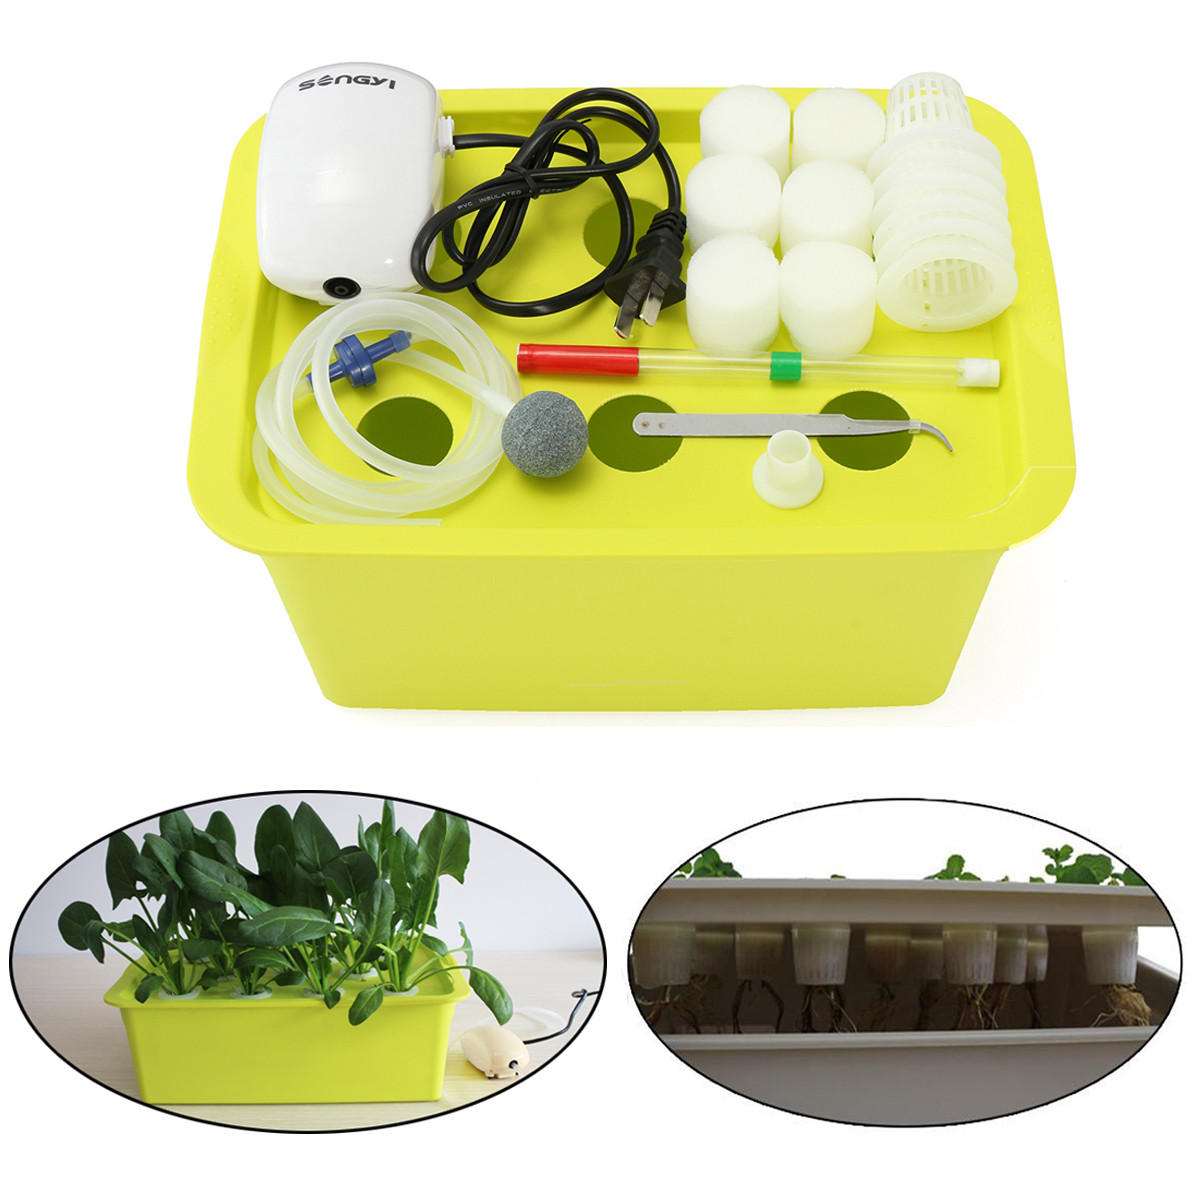 6 Trous Site Vegetal Systeme Hydroponique Grow Kit Bubble Interieur